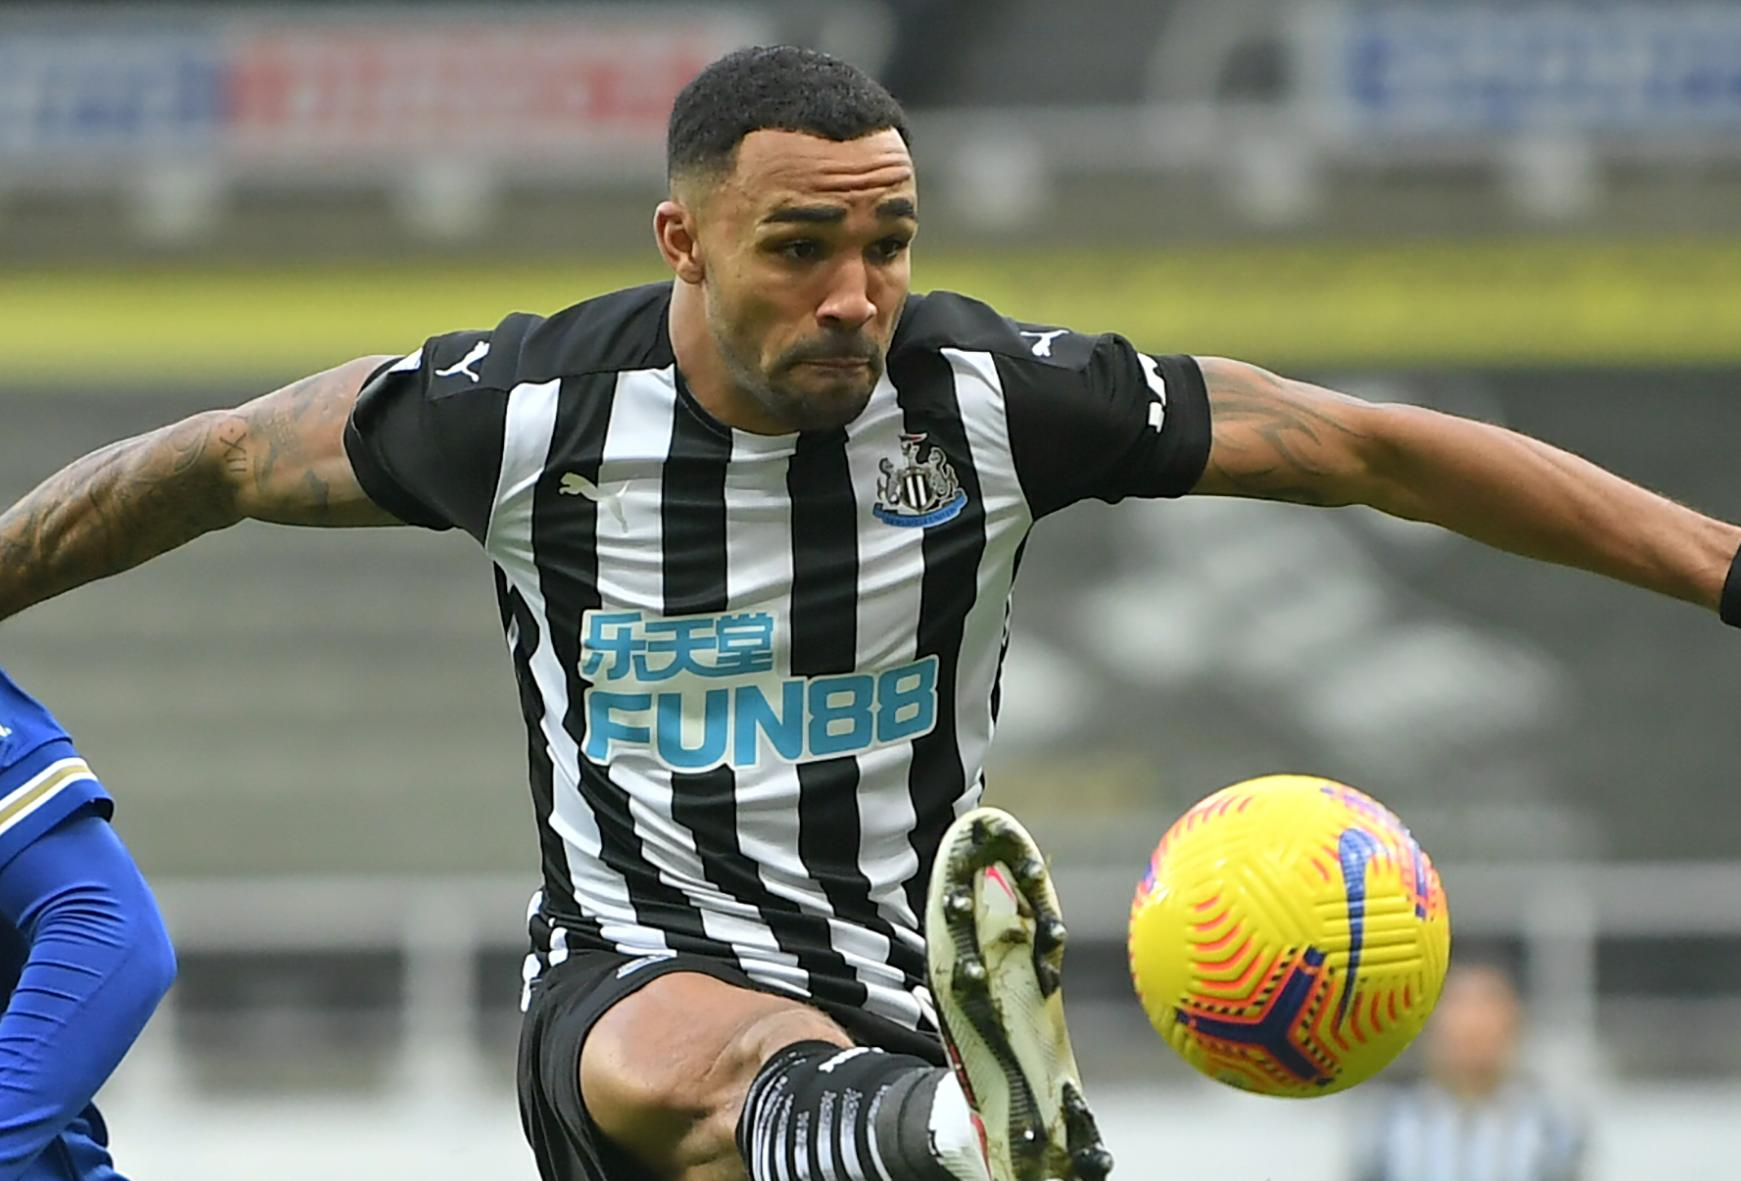 Match preview: Sheff Utd v Newcastle